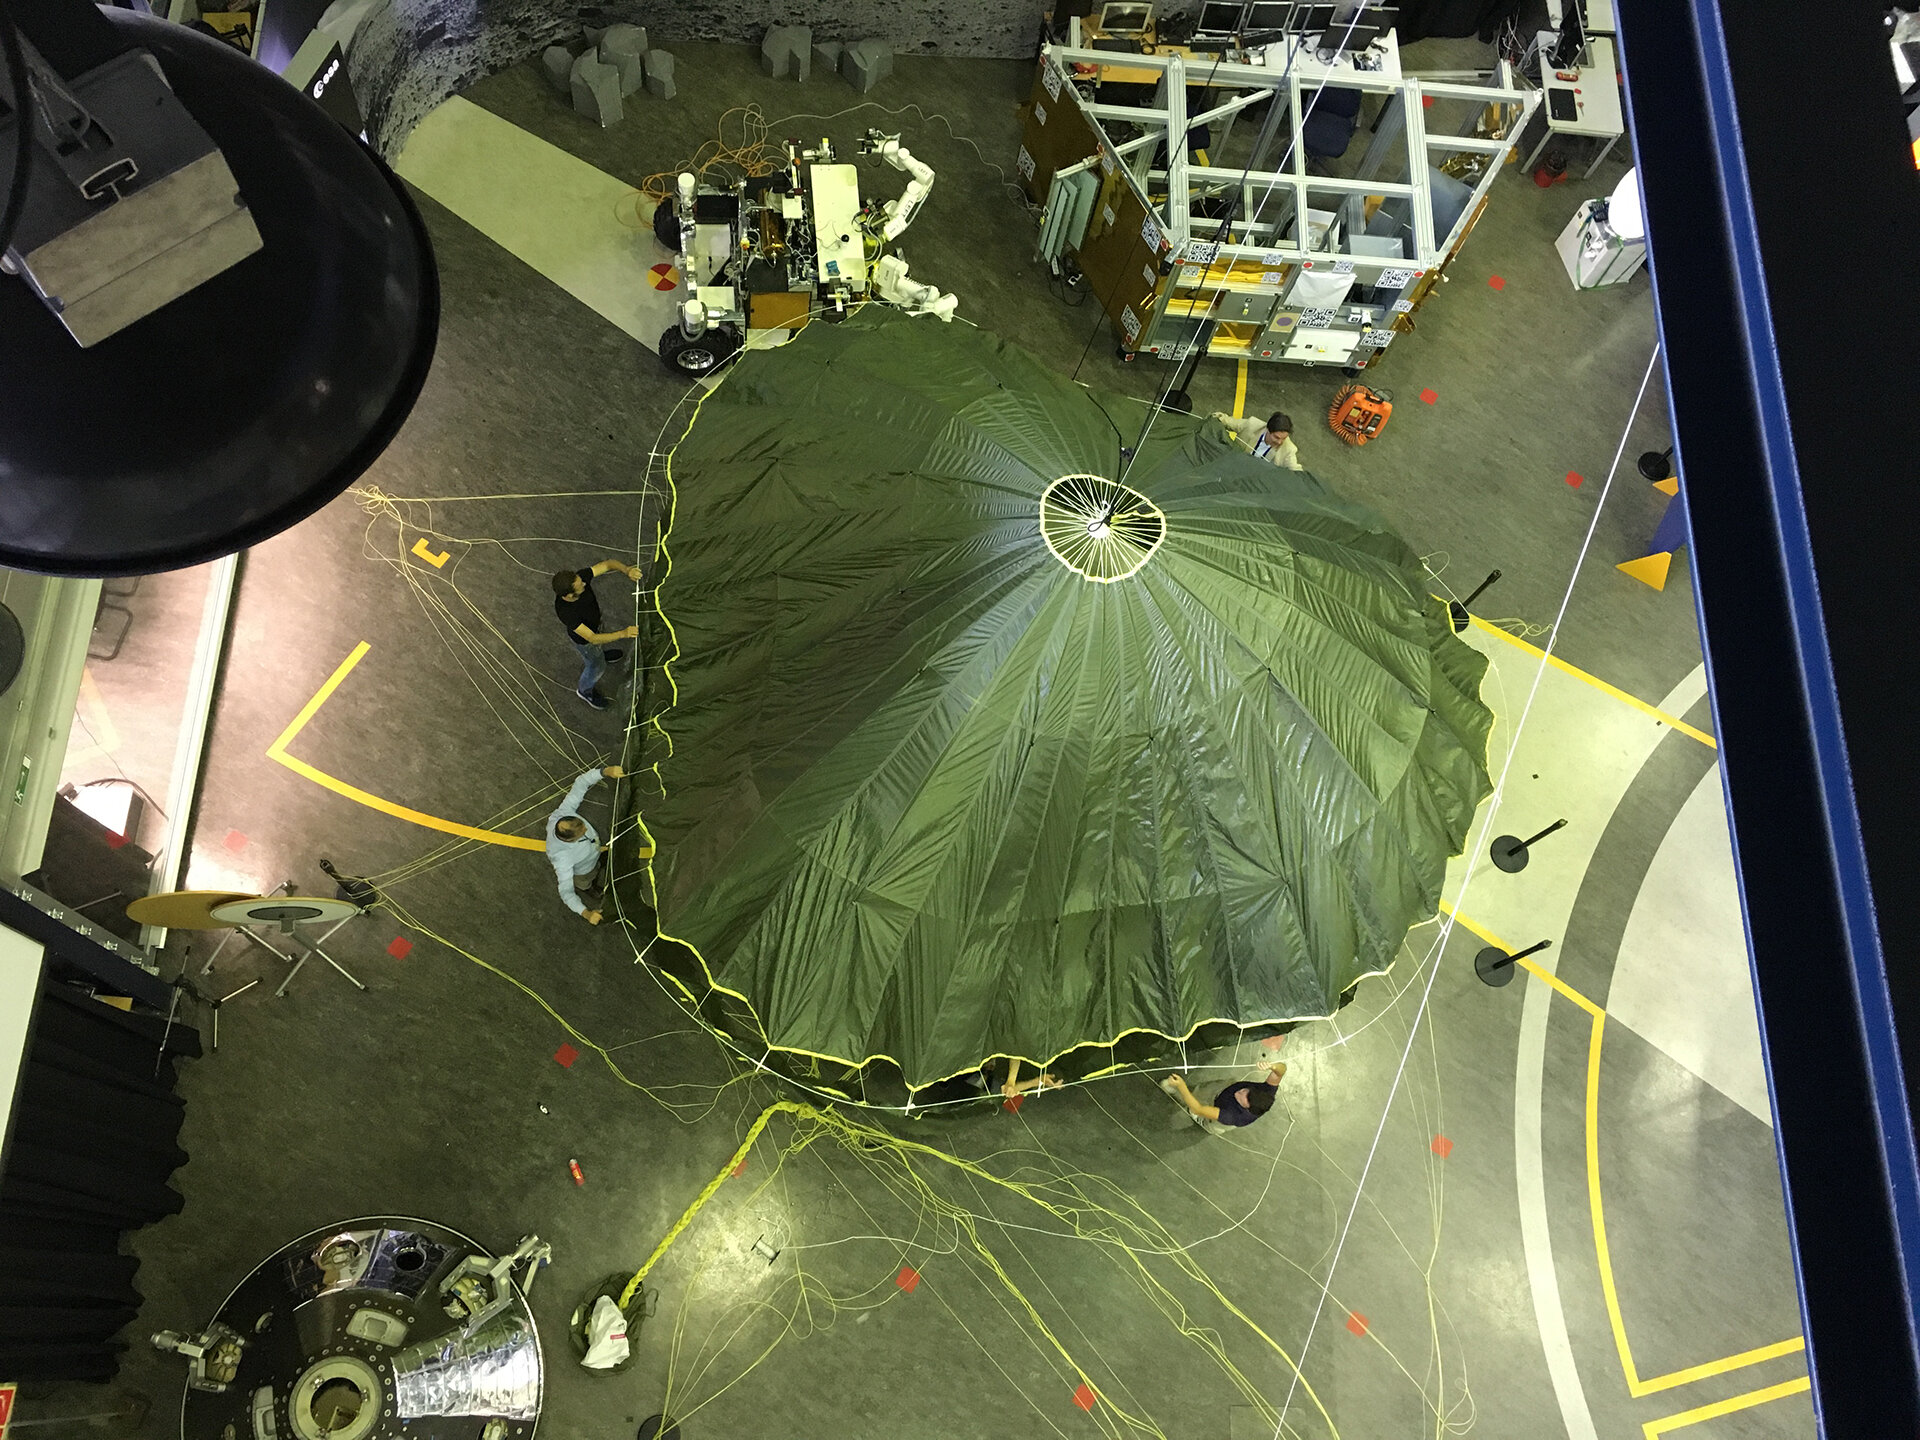 Installing Schiaparelli engineering model parachute